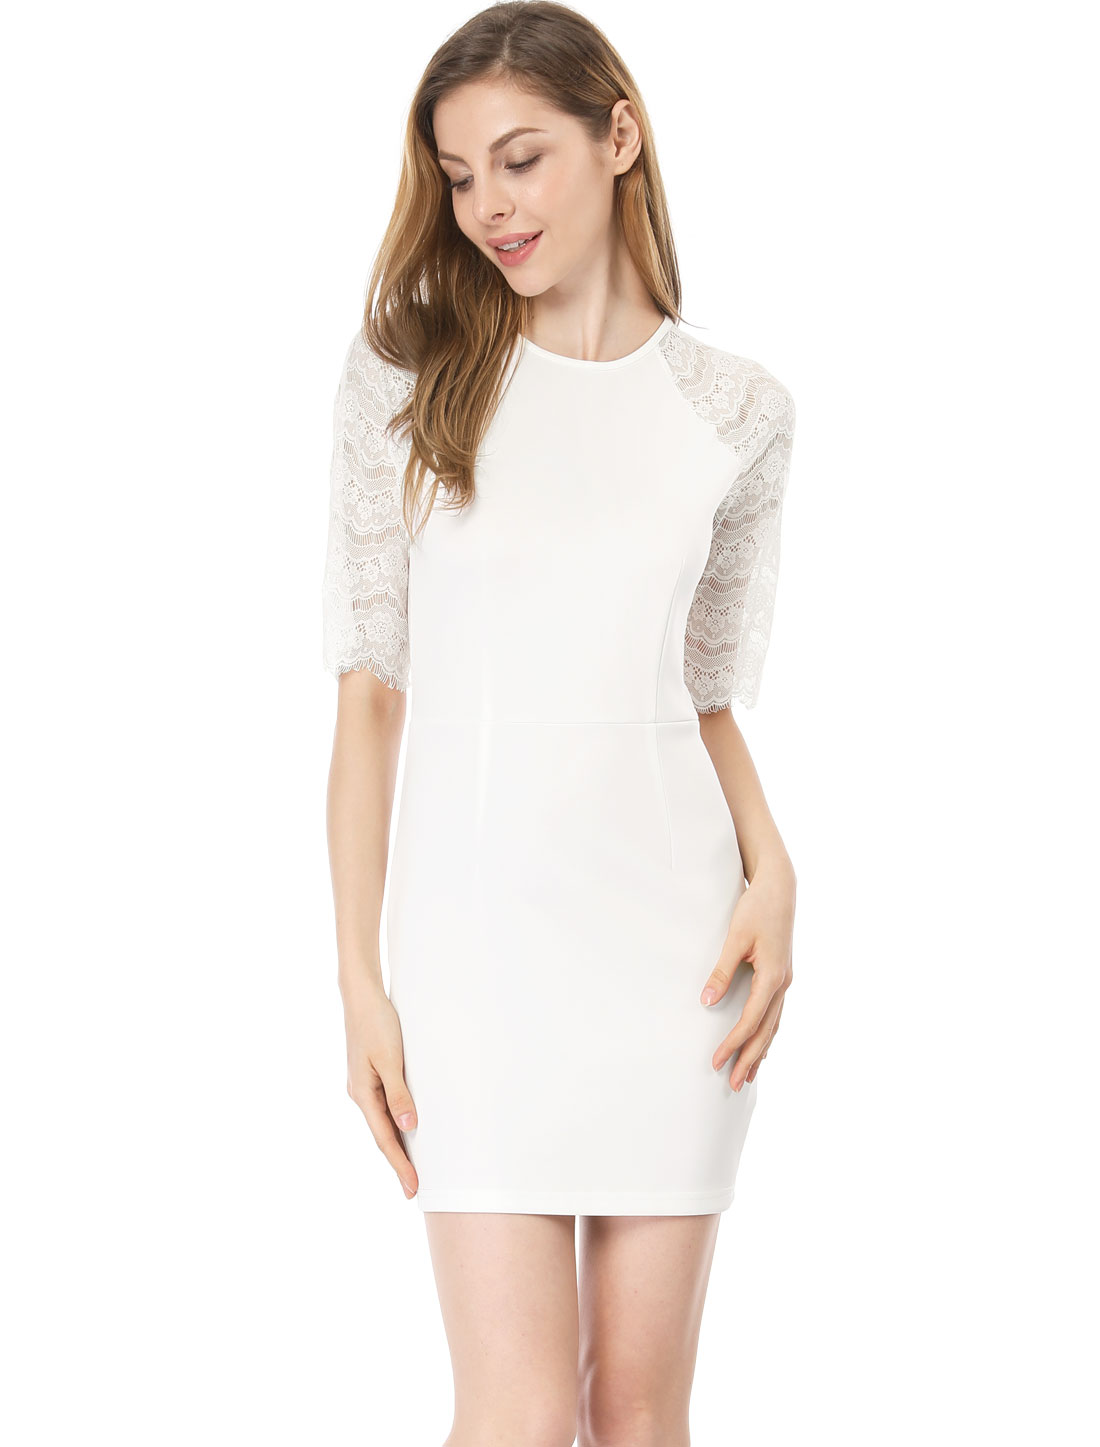 Lady High Neckline Elbow Sleeves Lace Bodycon Dress White M